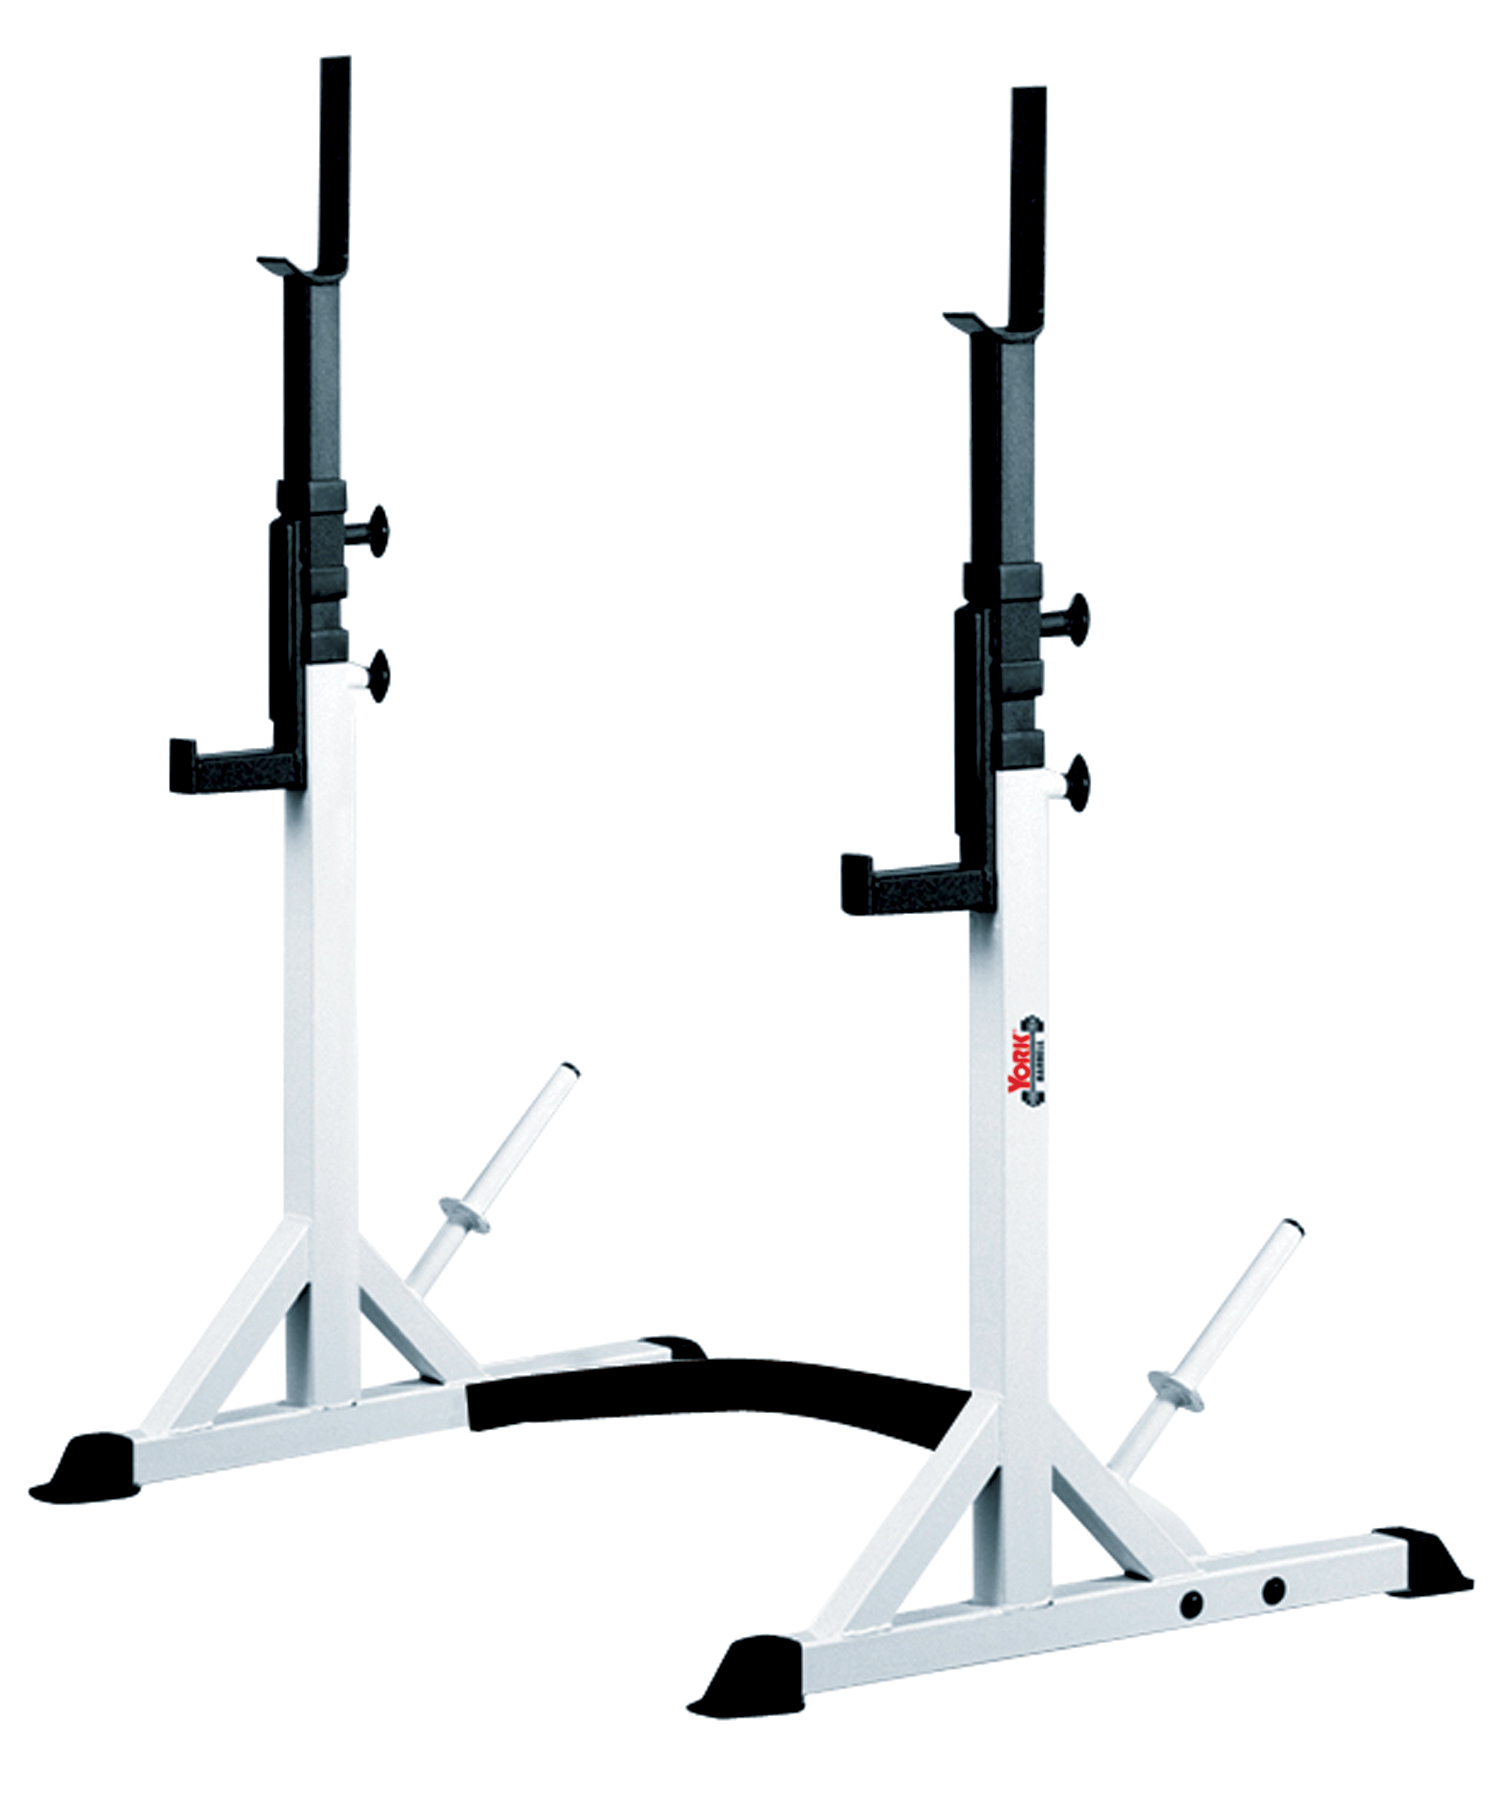 Fts press squat stands commercial gym equipment york for A squat rack